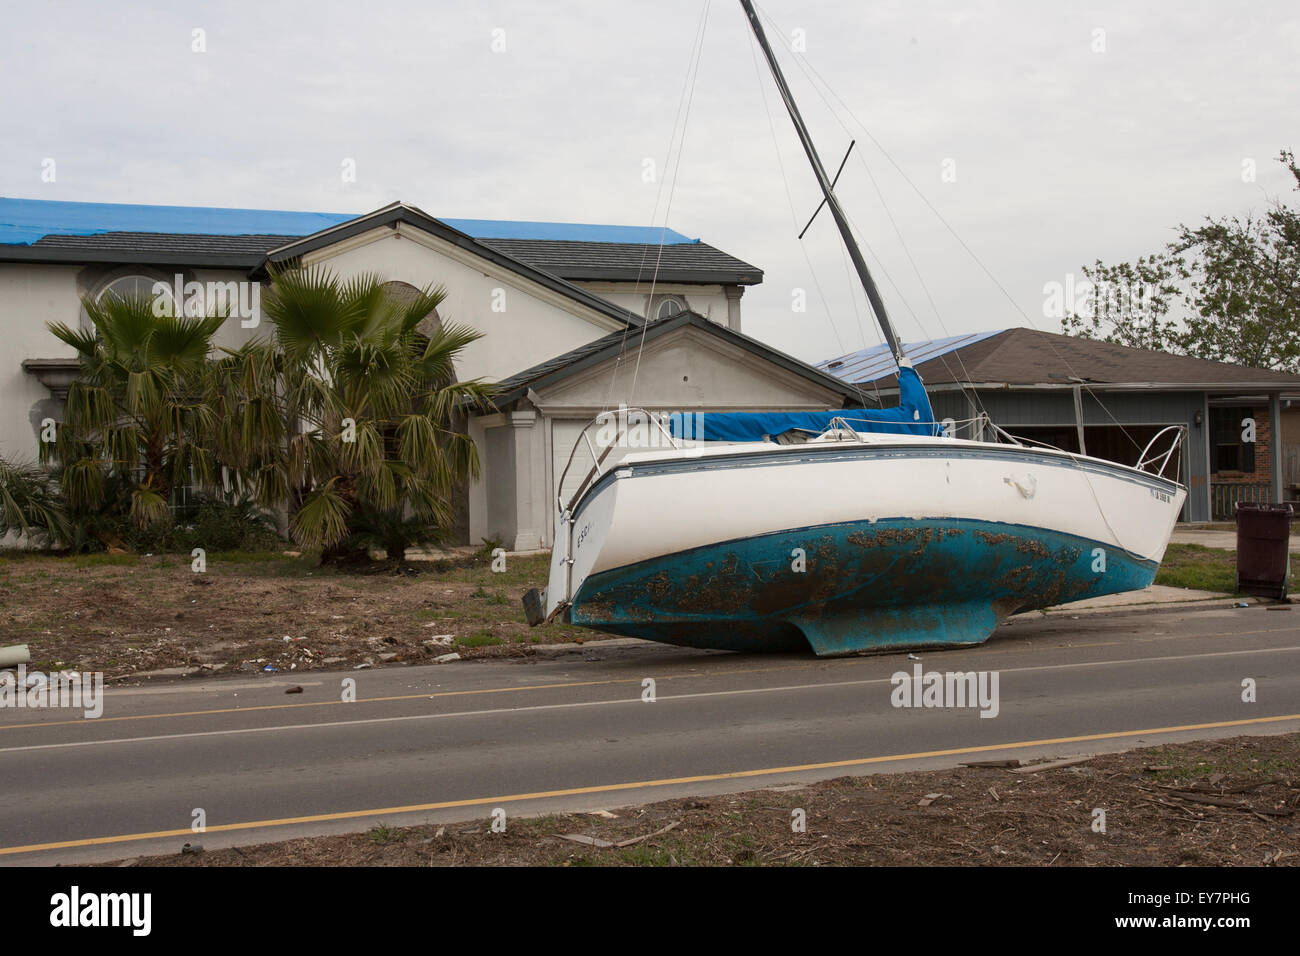 A sailboat on the street in front of a house in Slidell, Louisiana in the aftermath of Hurricane Katrina. - Stock Image